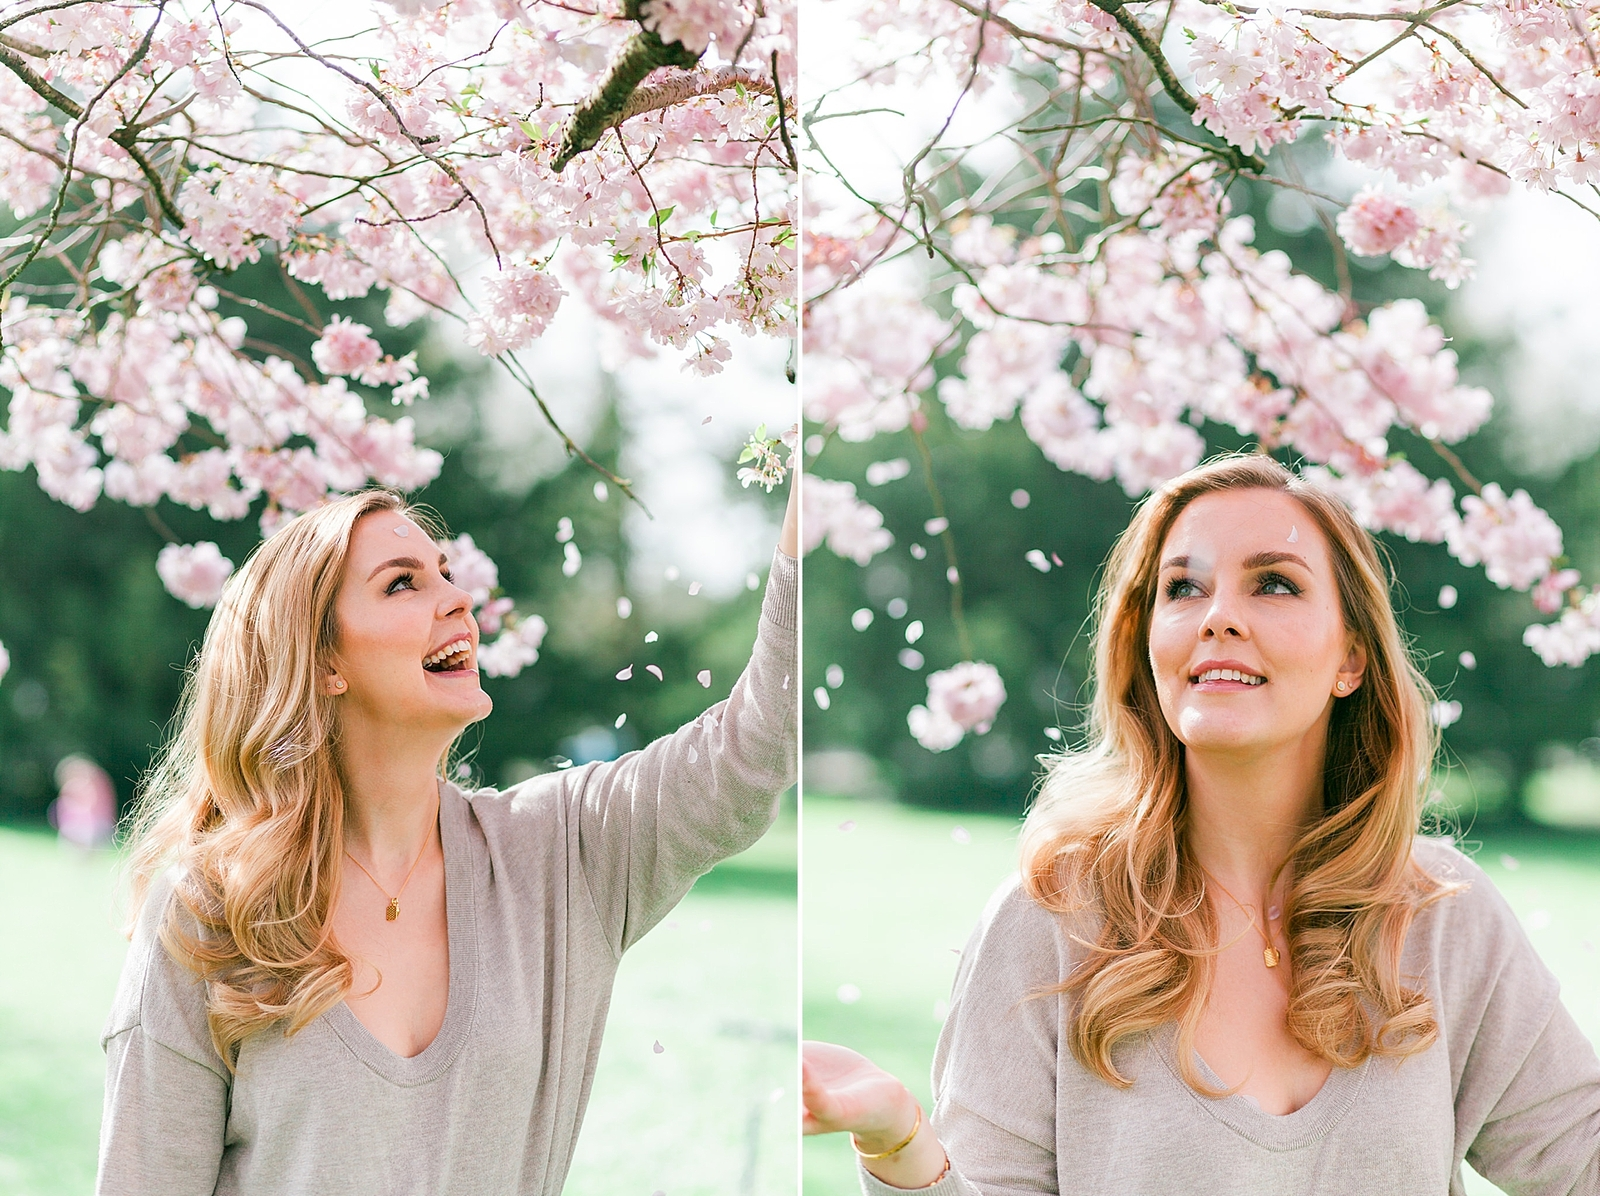 Branding headshot photo by Emma Jackson Photography of a woman in a neutral top standing amongst pink blossom smiling and watching the petals fall